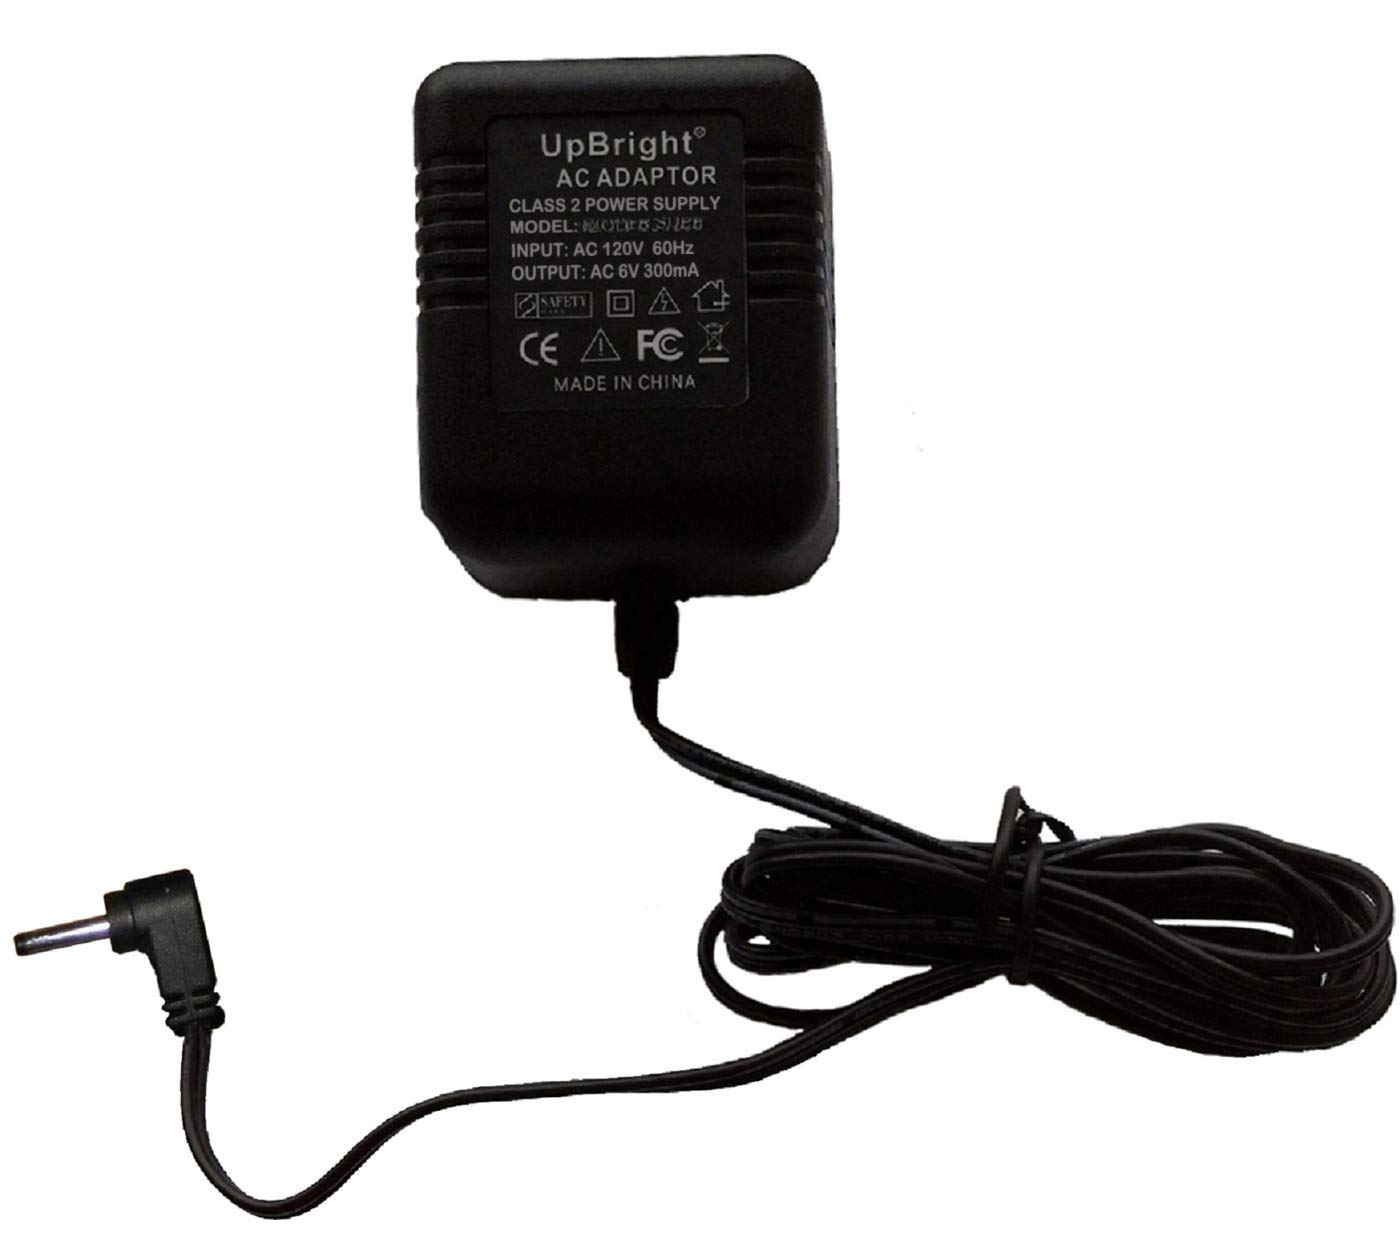 SIL UA-0603 AC Adapter AT/&T Vetch Charger